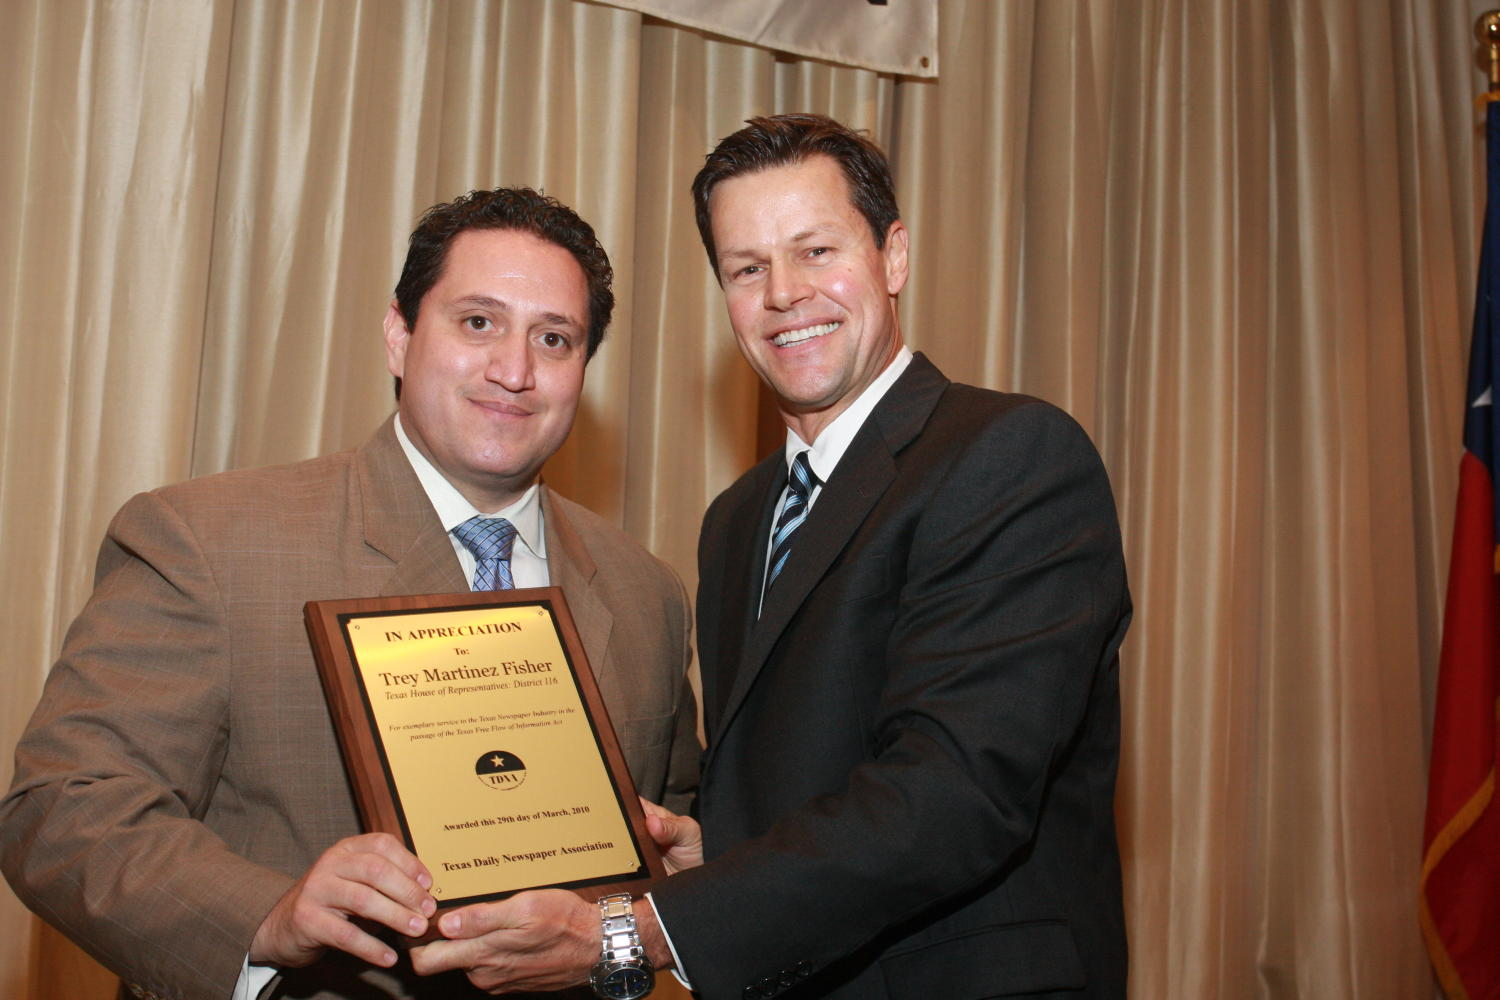 "[Fred K. Hartman presenting award to Trey Martinez Fisher], Photograph of Fred K. Hartman (right) presenting an award to Trey Martinez Fisher (left) during the 2010 Texas Daily Newspaper Association annual meeting held in Houston, Texas. The award reads, ""In Appreciation to: Trey Martinez Fisher, Texas House of Representatives: District 116."","